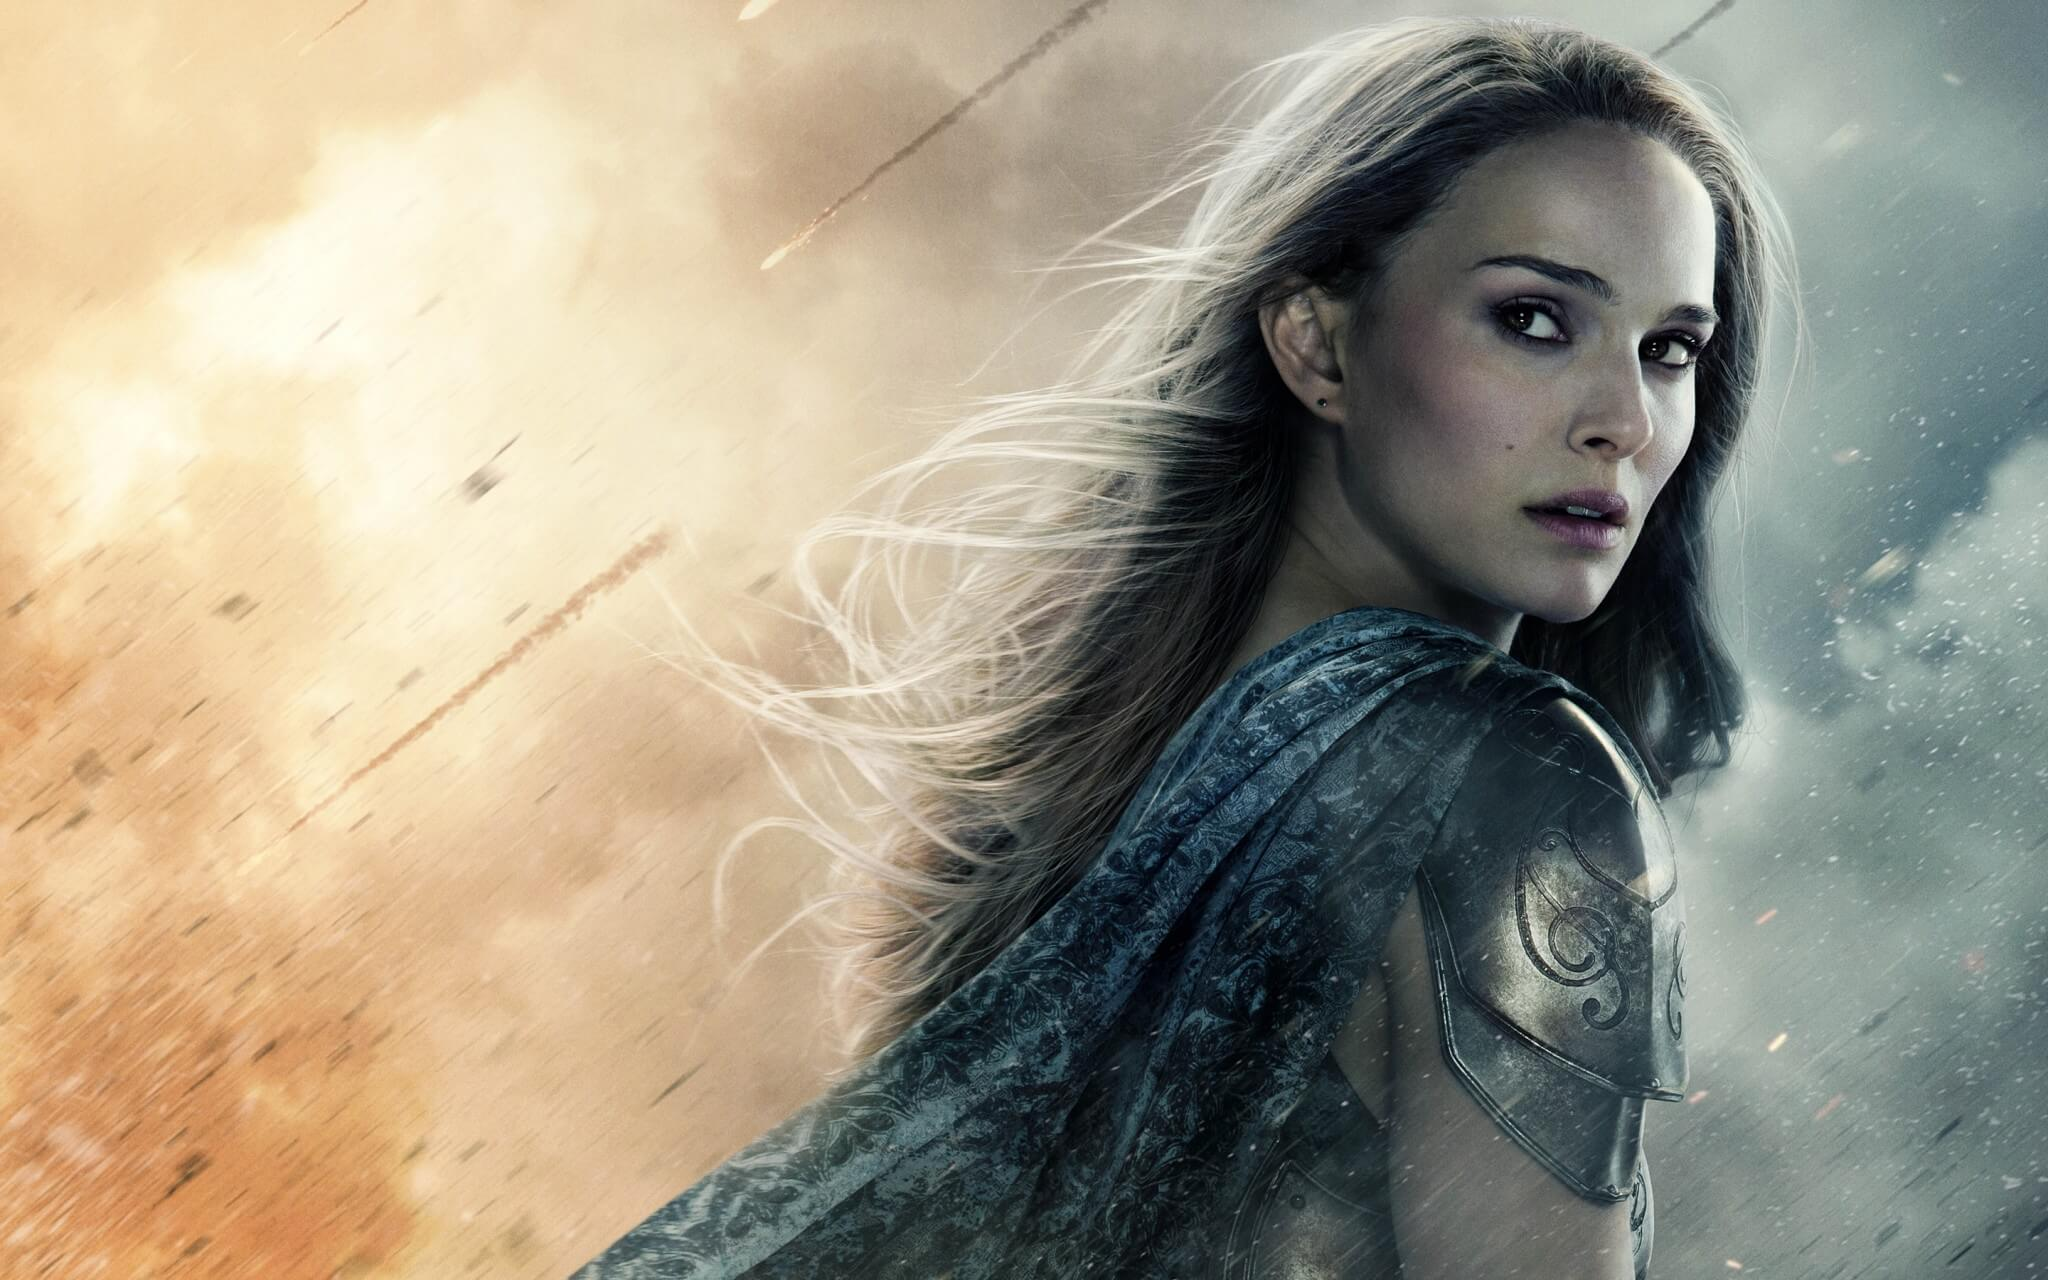 Natalie Portman returns as Jane Foster in THOR: LOVE & THUNDER